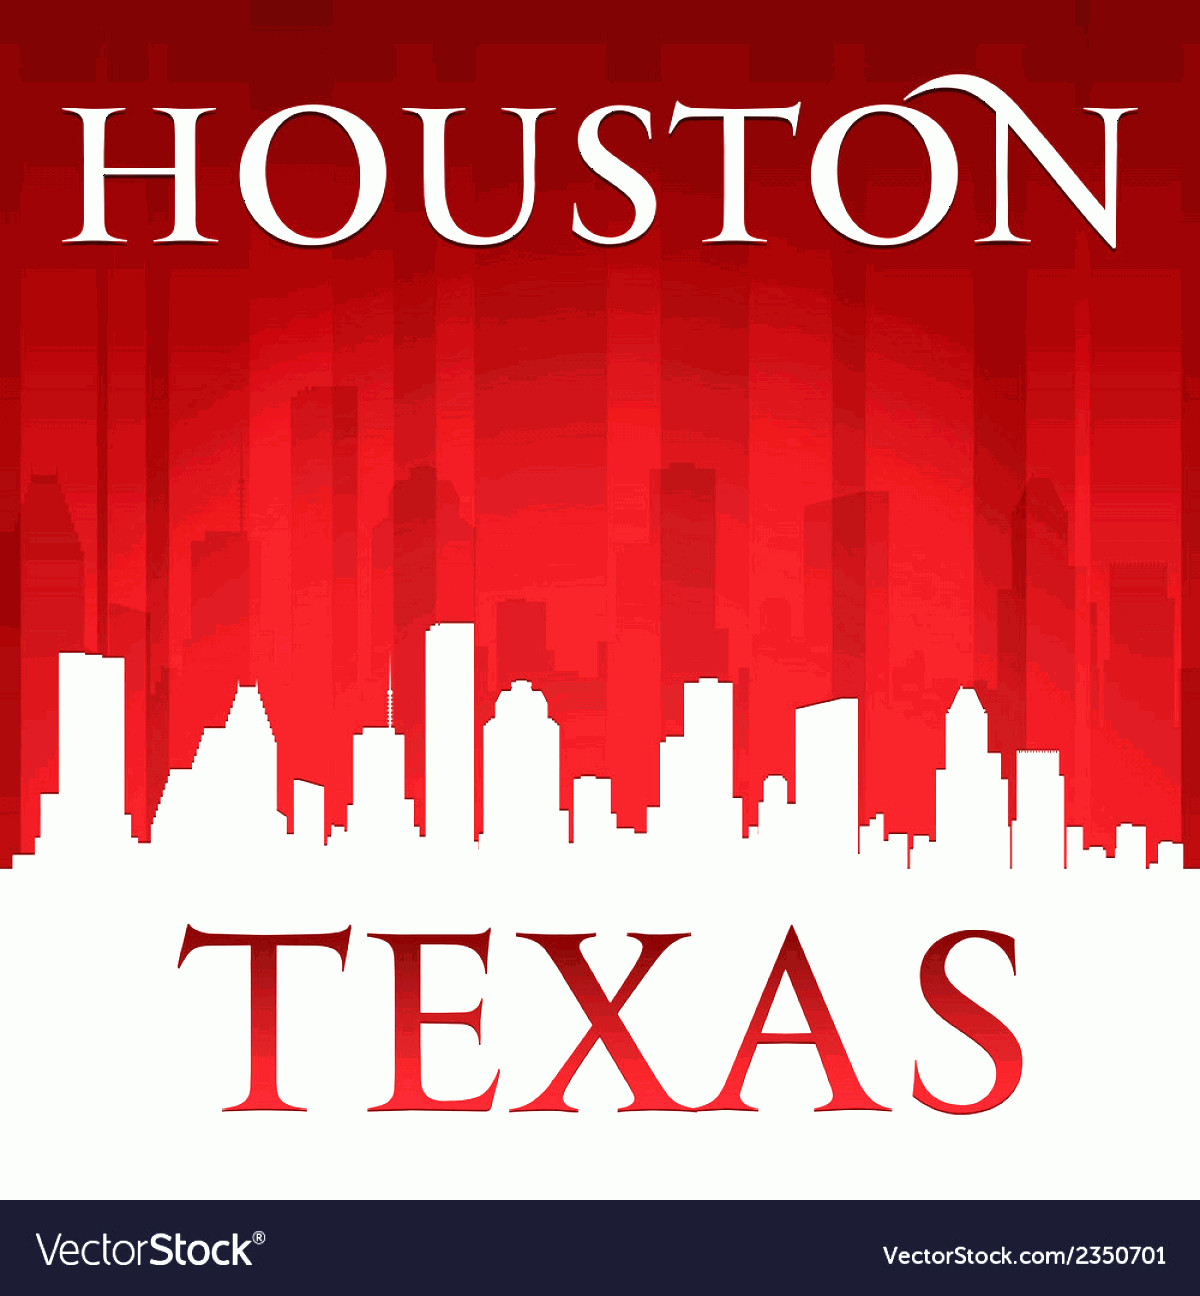 Vector Houston TX: Houston Texas City Skyline Silhouette Vector